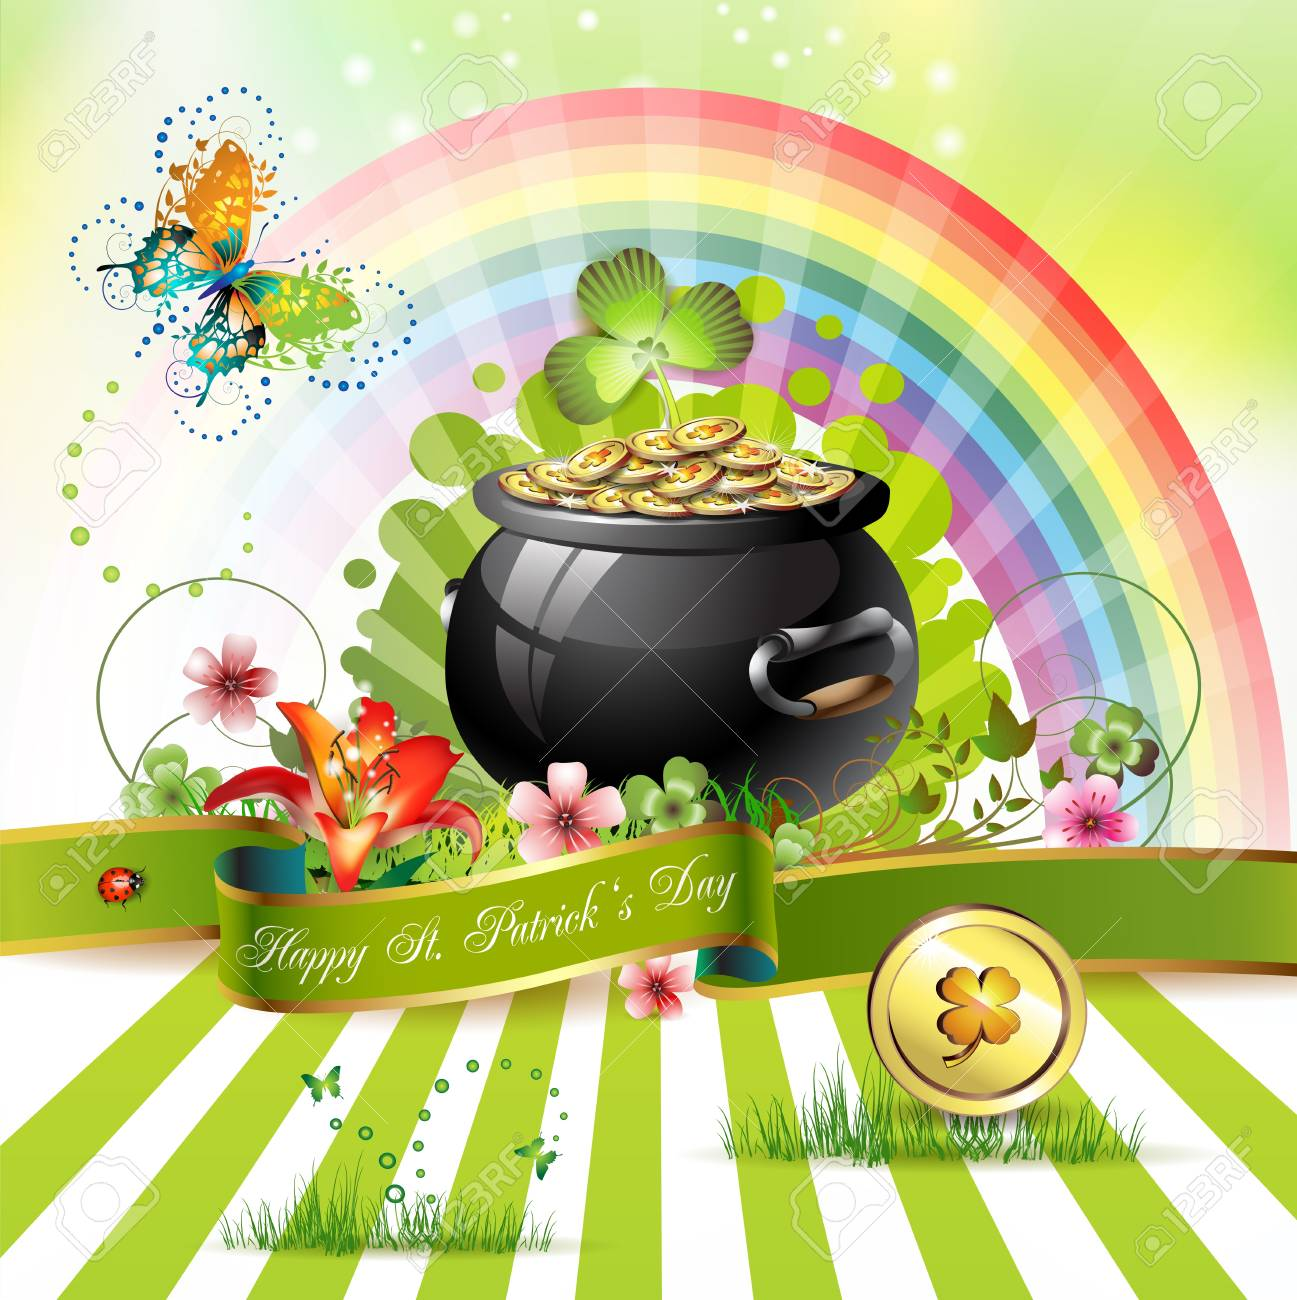 St  Patrick s Day card design with clover and coins Stock Vector - 12774282